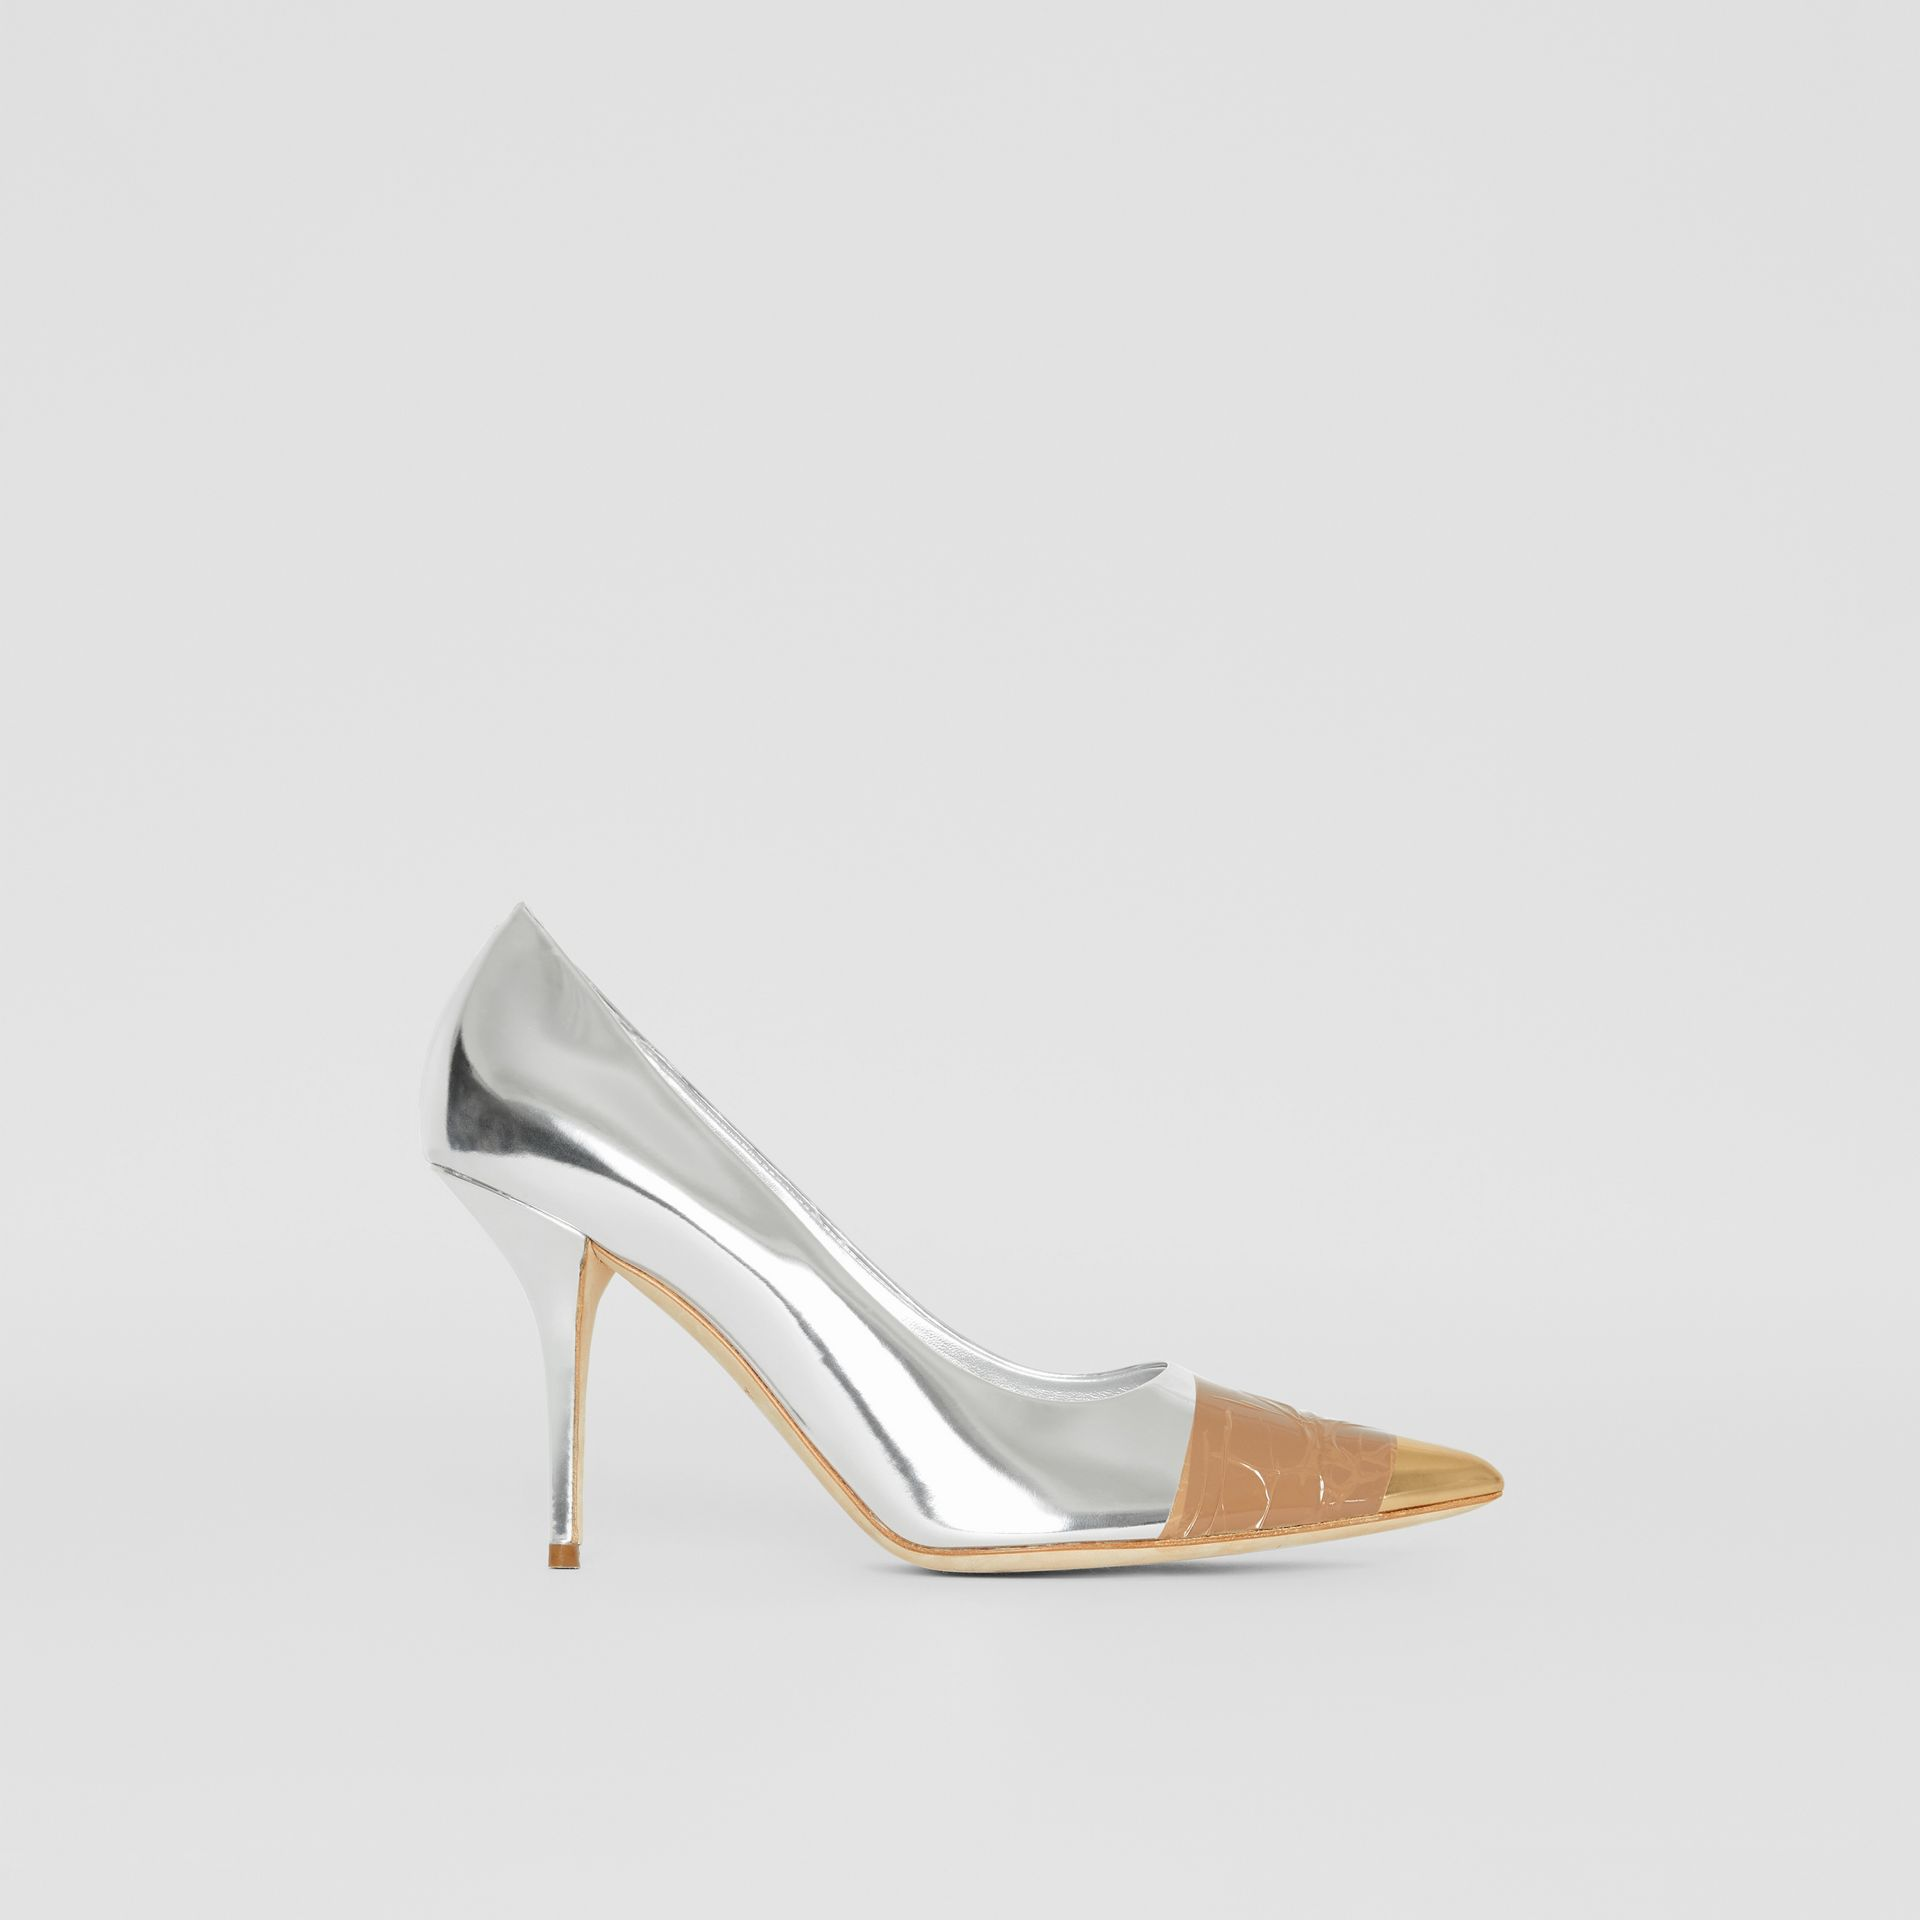 Tape Detail Mirrored Leather Pumps in Silver/gold - Women | Burberry - gallery image 5